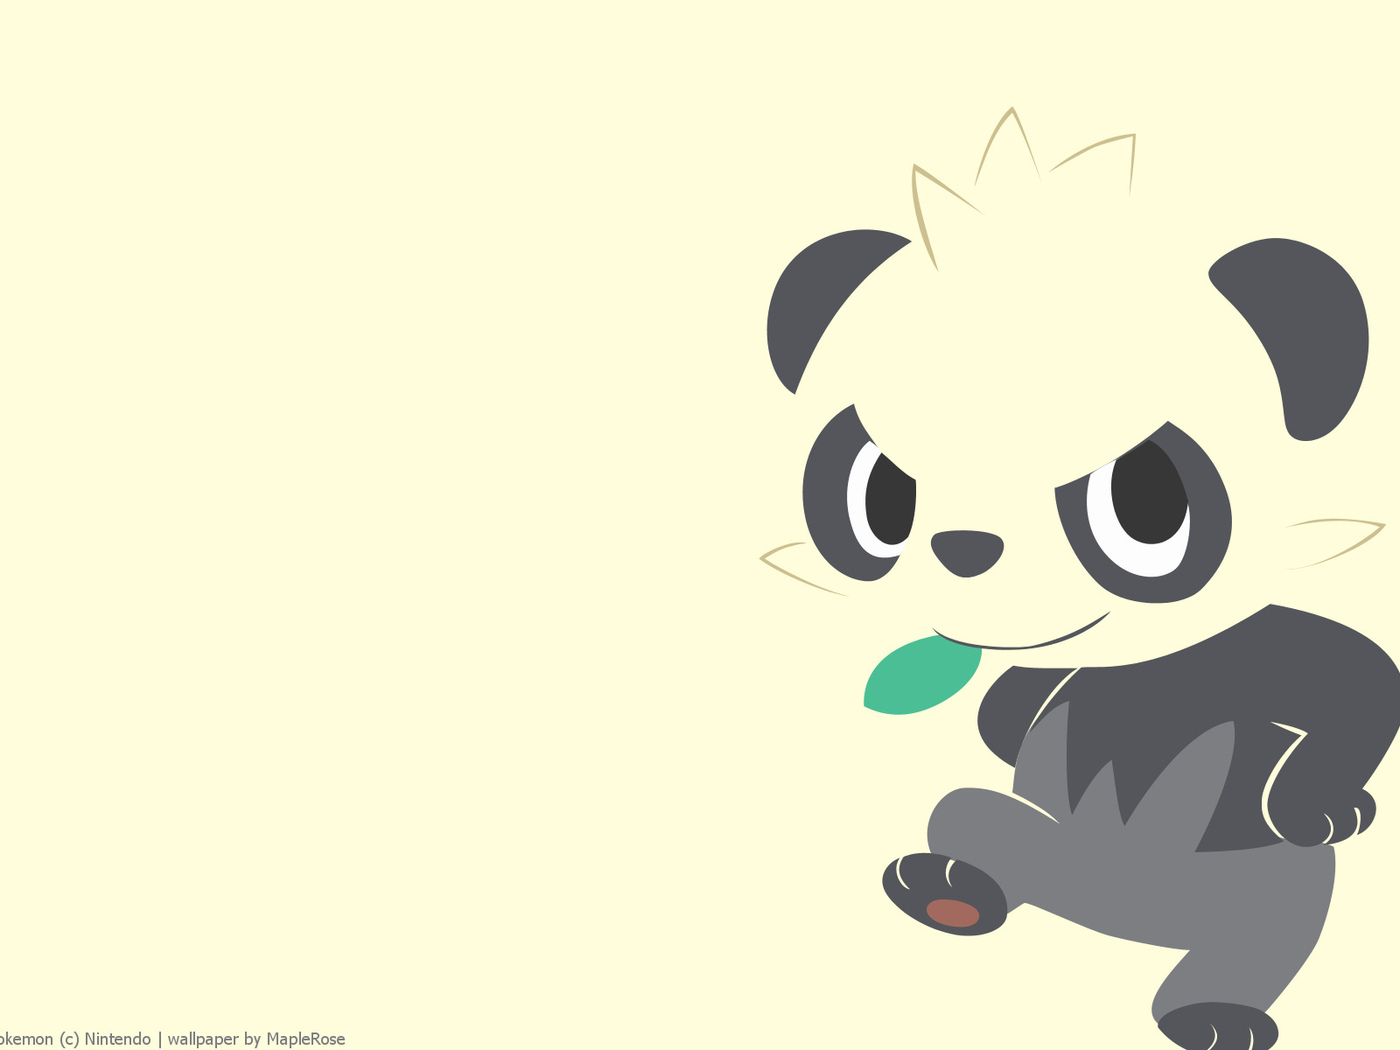 pokemon, pancham